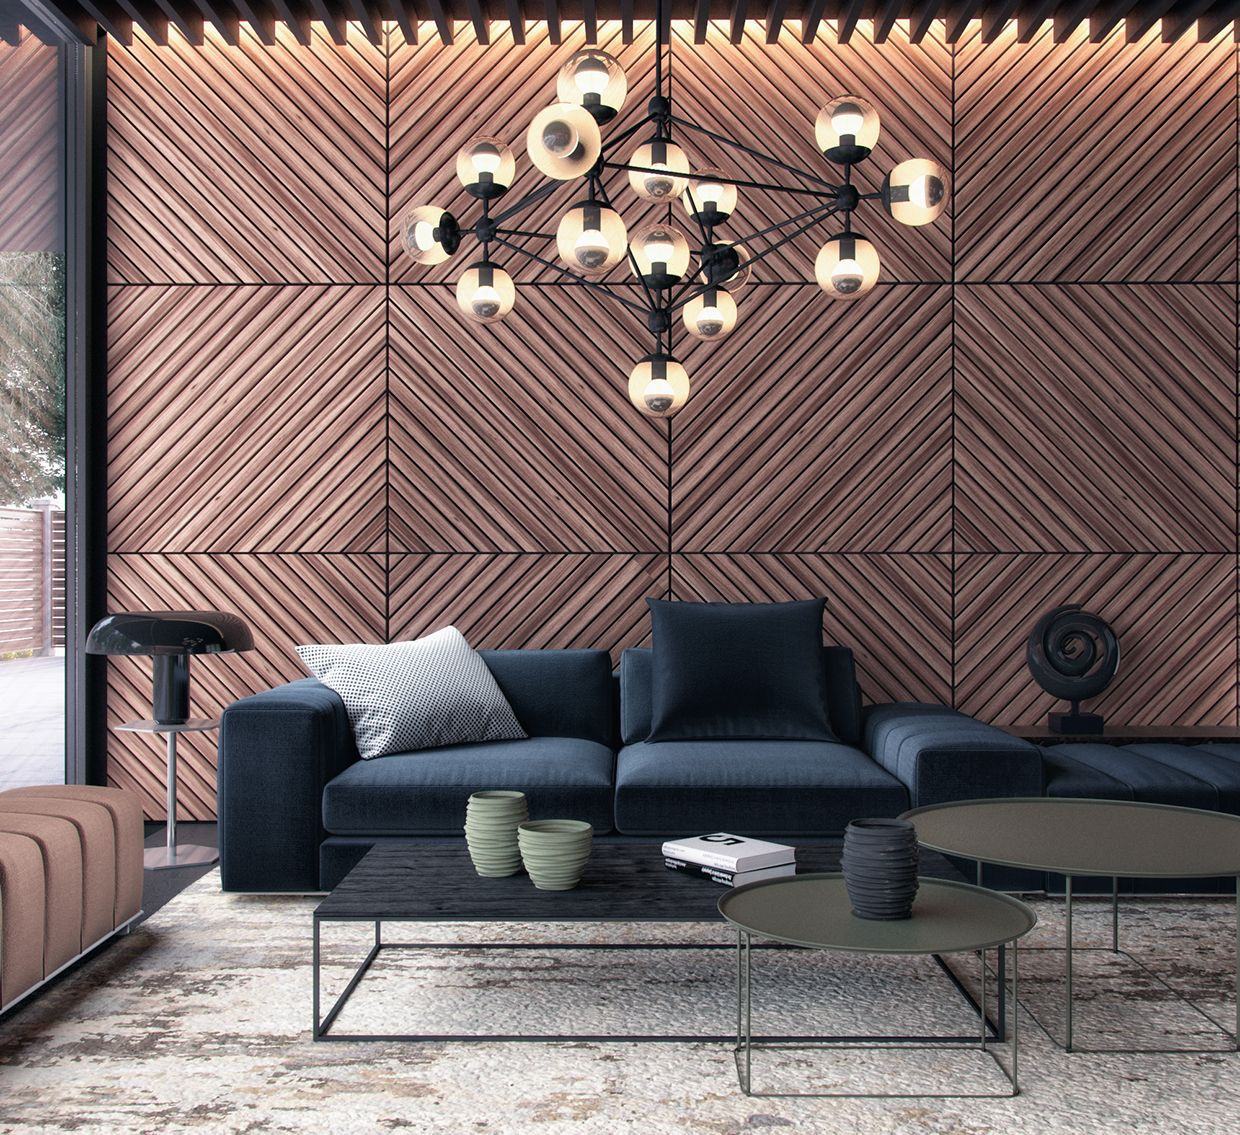 1001 Breathtaking Accent Wall Ideas For Living Room: 71158a37881993.574f4db293a5a.jpg (1240×1135)